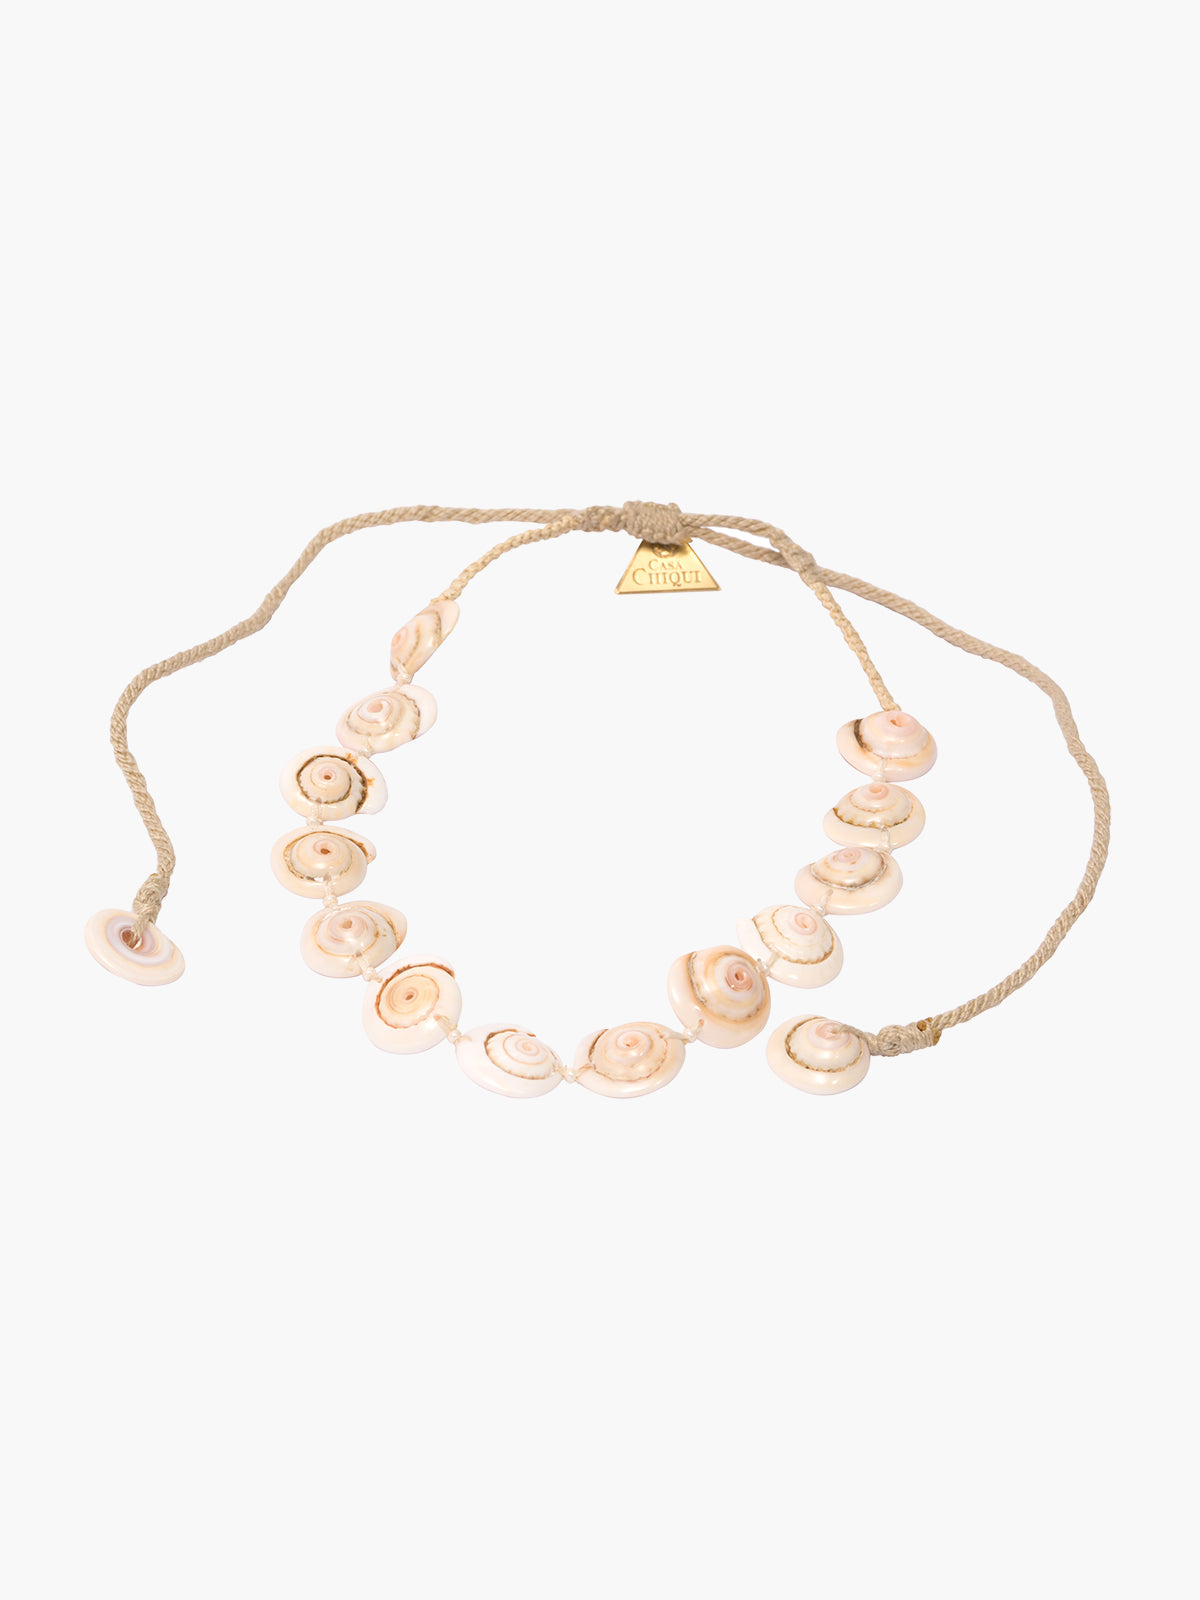 Seashell Choker | Natural Seashell Choker | Natural